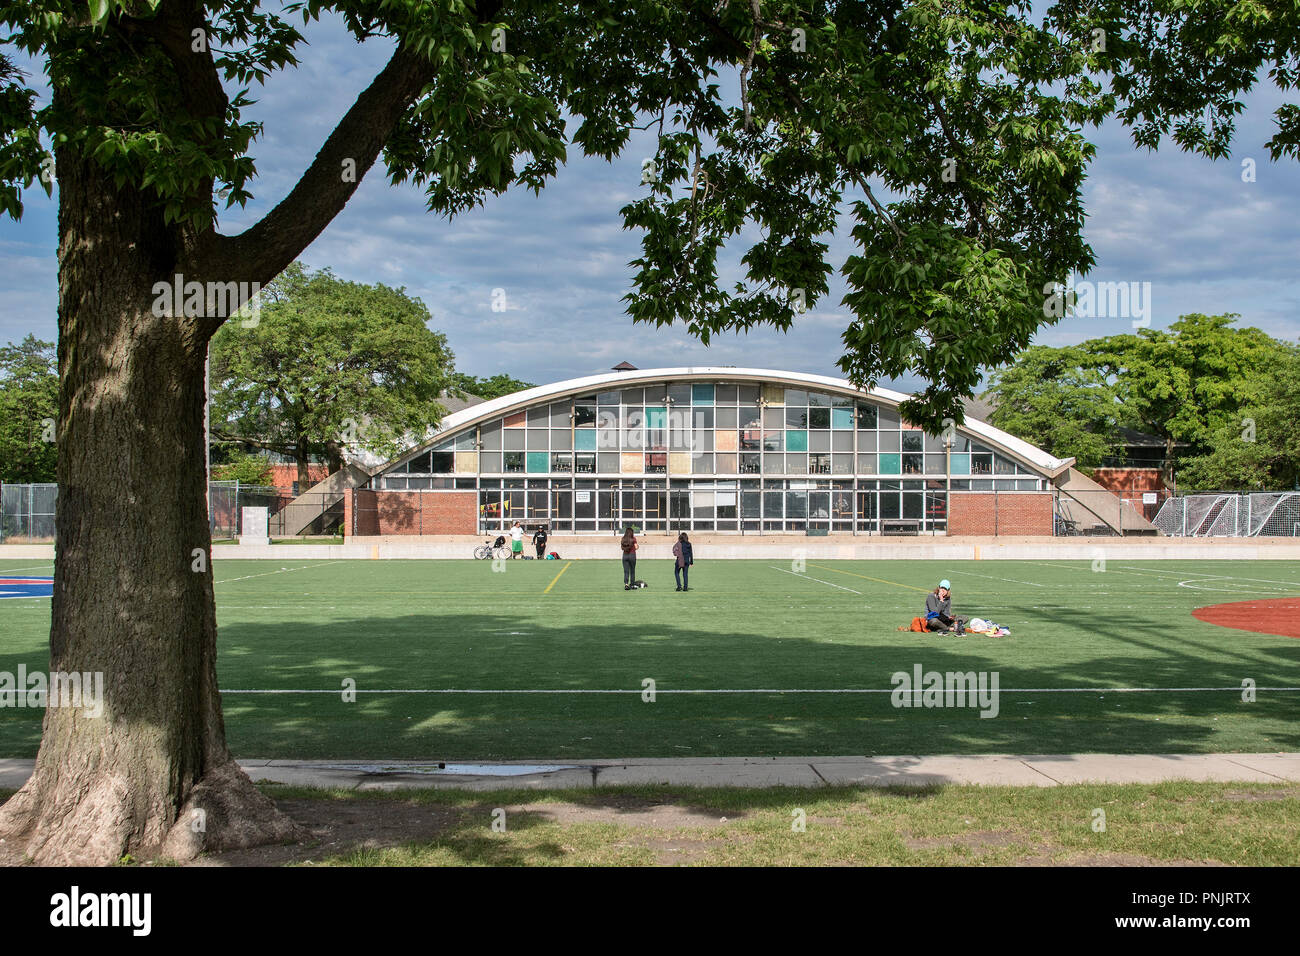 Harrison Park, sports field and natatorium in the Pilsen neighborhood, historic area on the Lower West Side of Chicago, IL. - Stock Image